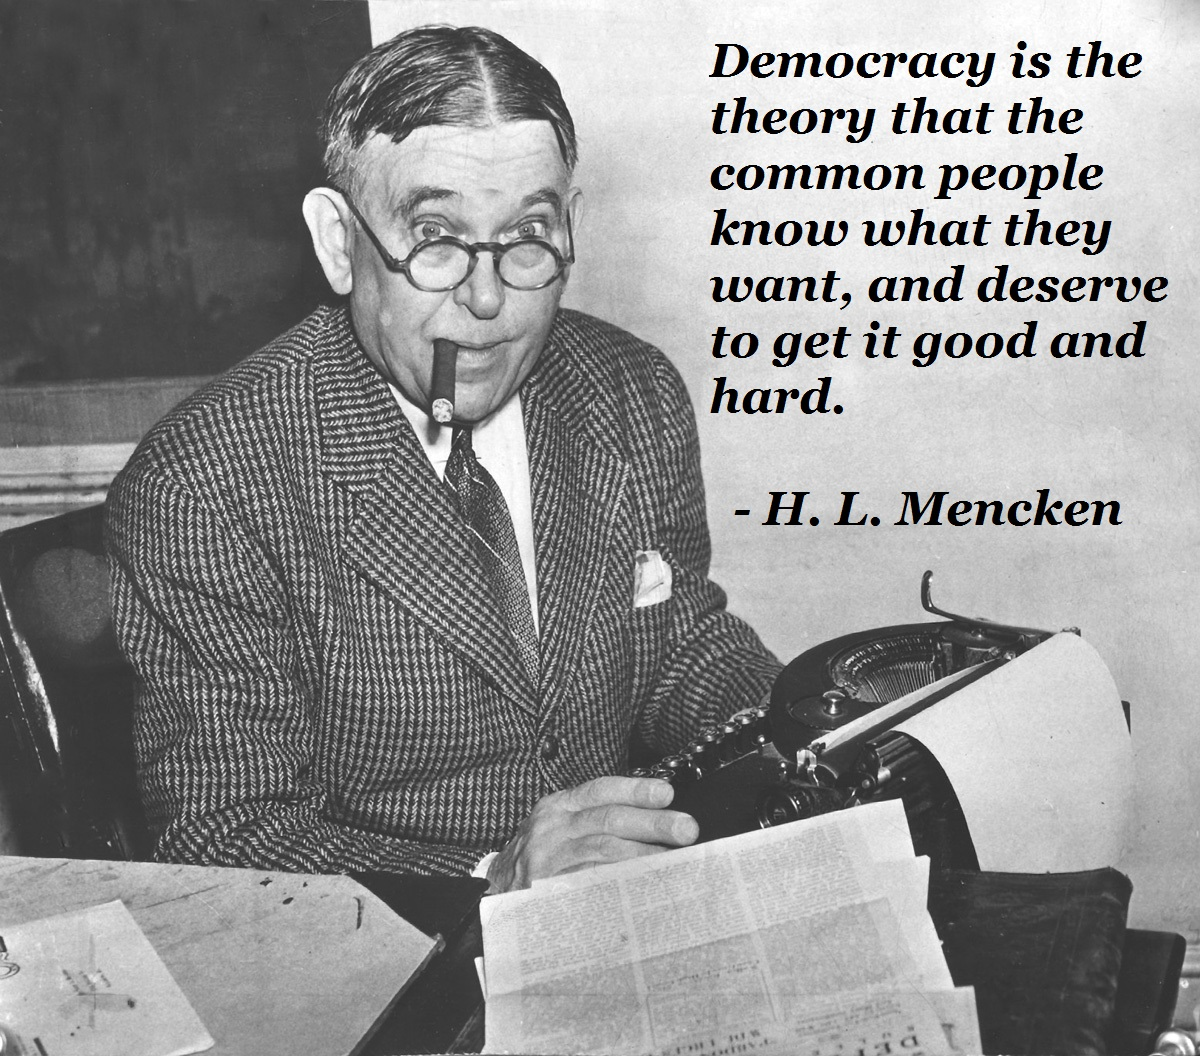 """Democracy is the theory that the common people know what they want, and deserve to get it good and hard."" — H. L. Mencken [1200 x 1056]"